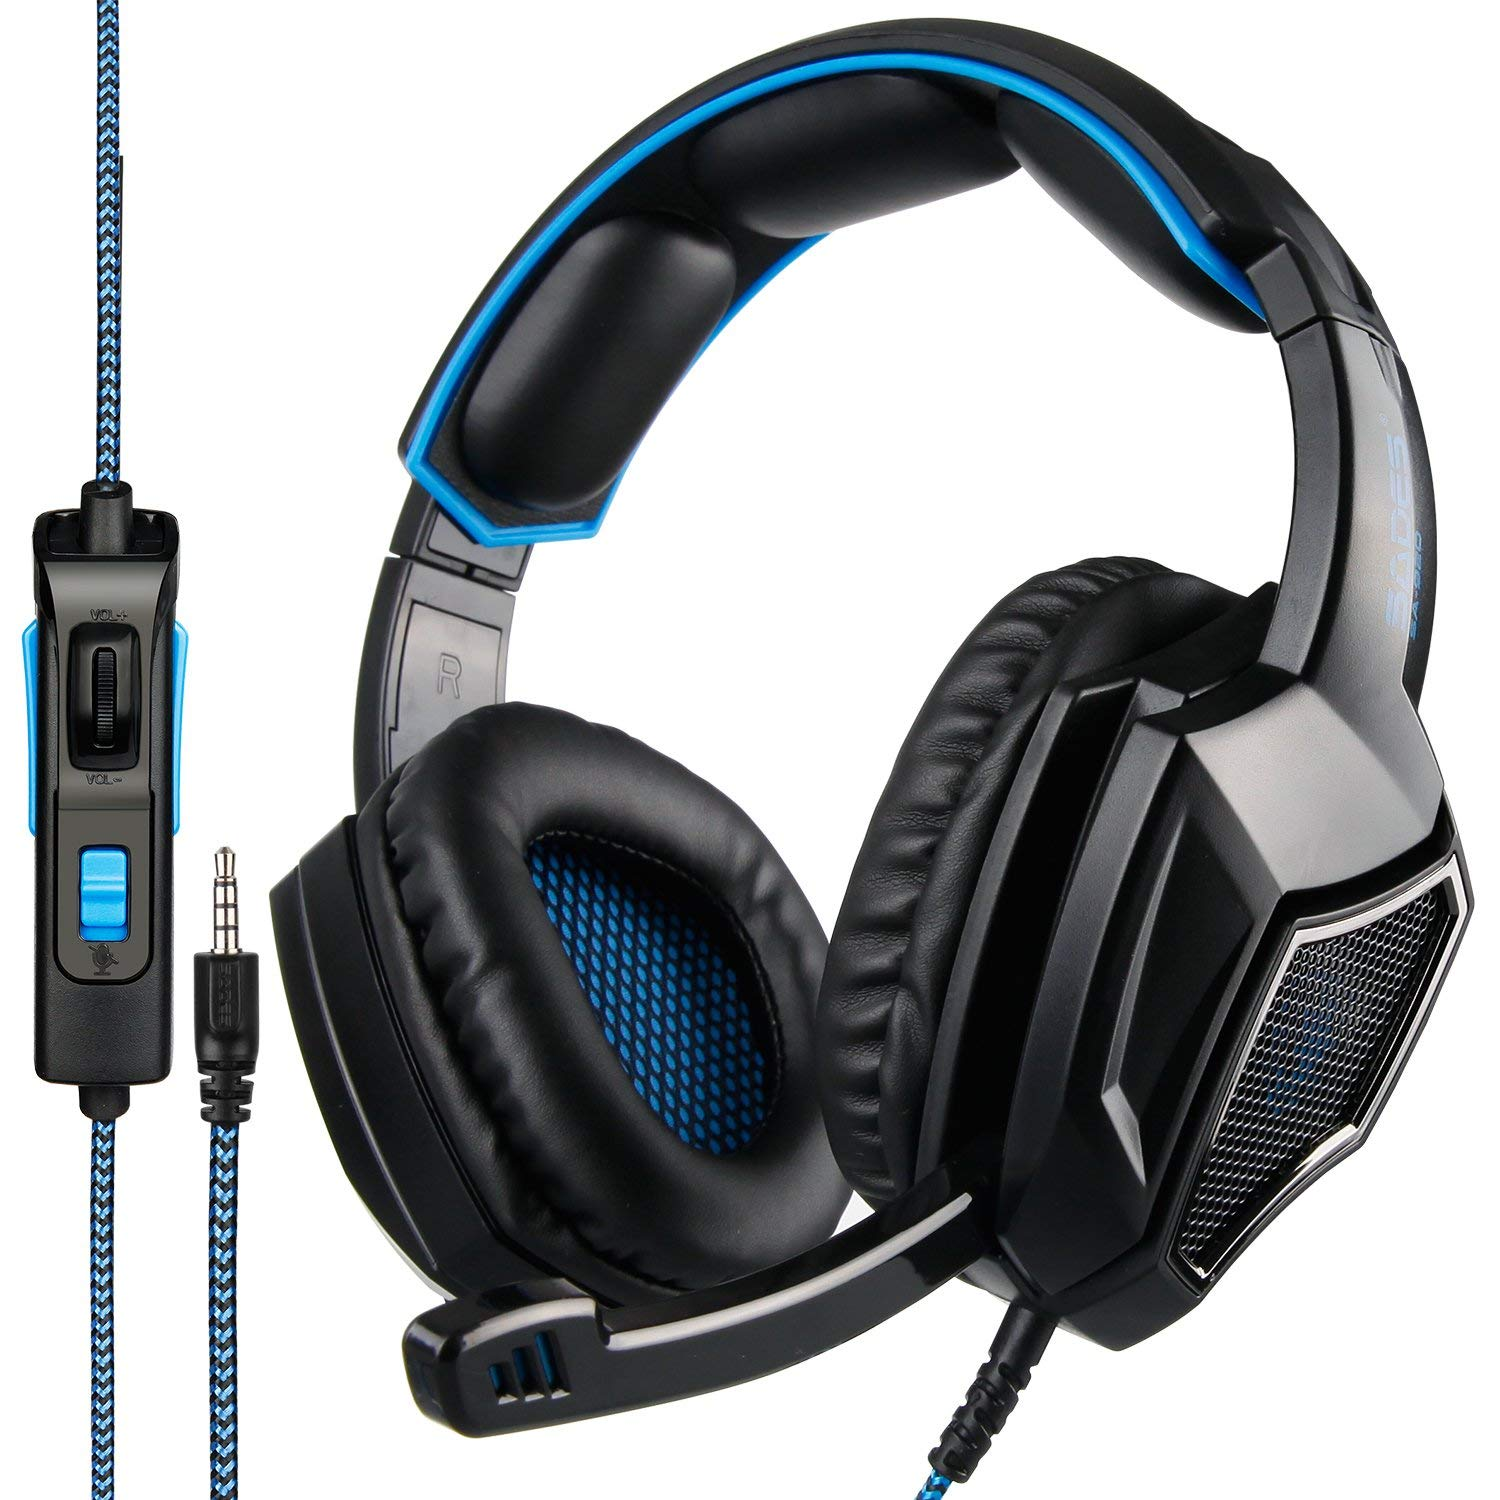 Newest Updately Sades SA920Plus Wired Stereo Gaming Headset Over Ear Headphones with Microphone for New Xbox One PS4 PC Cell Phones- Black Blue